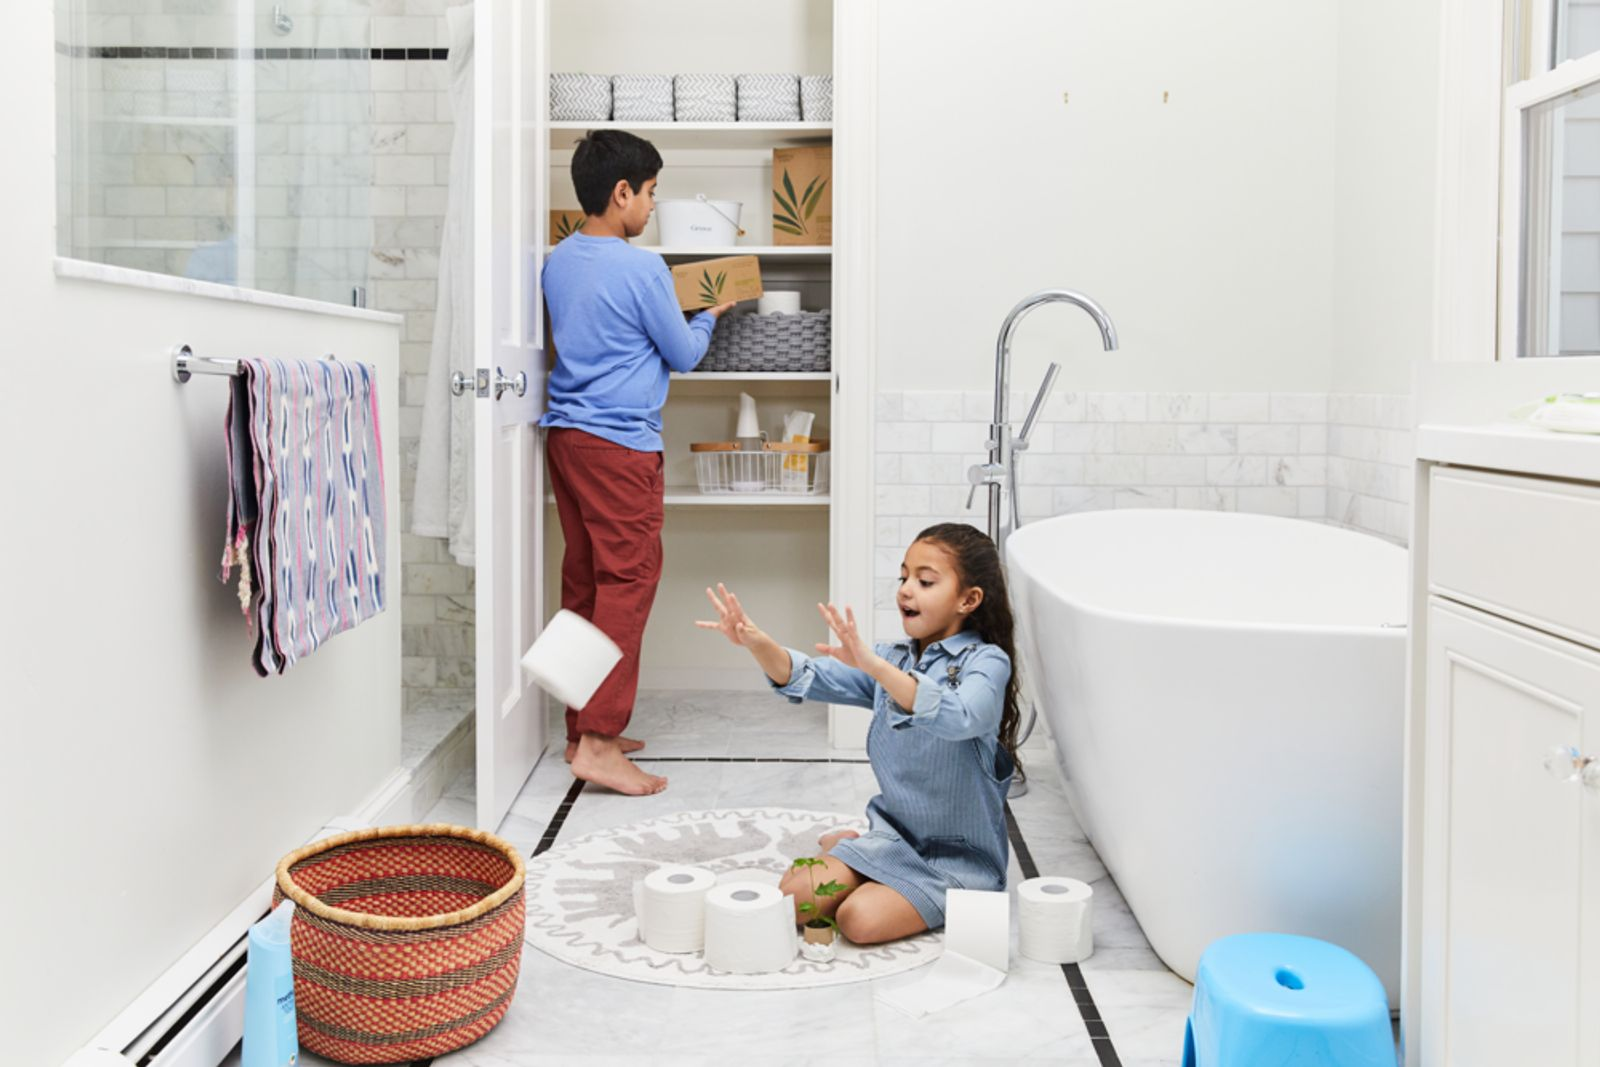 Children playing in bathroom